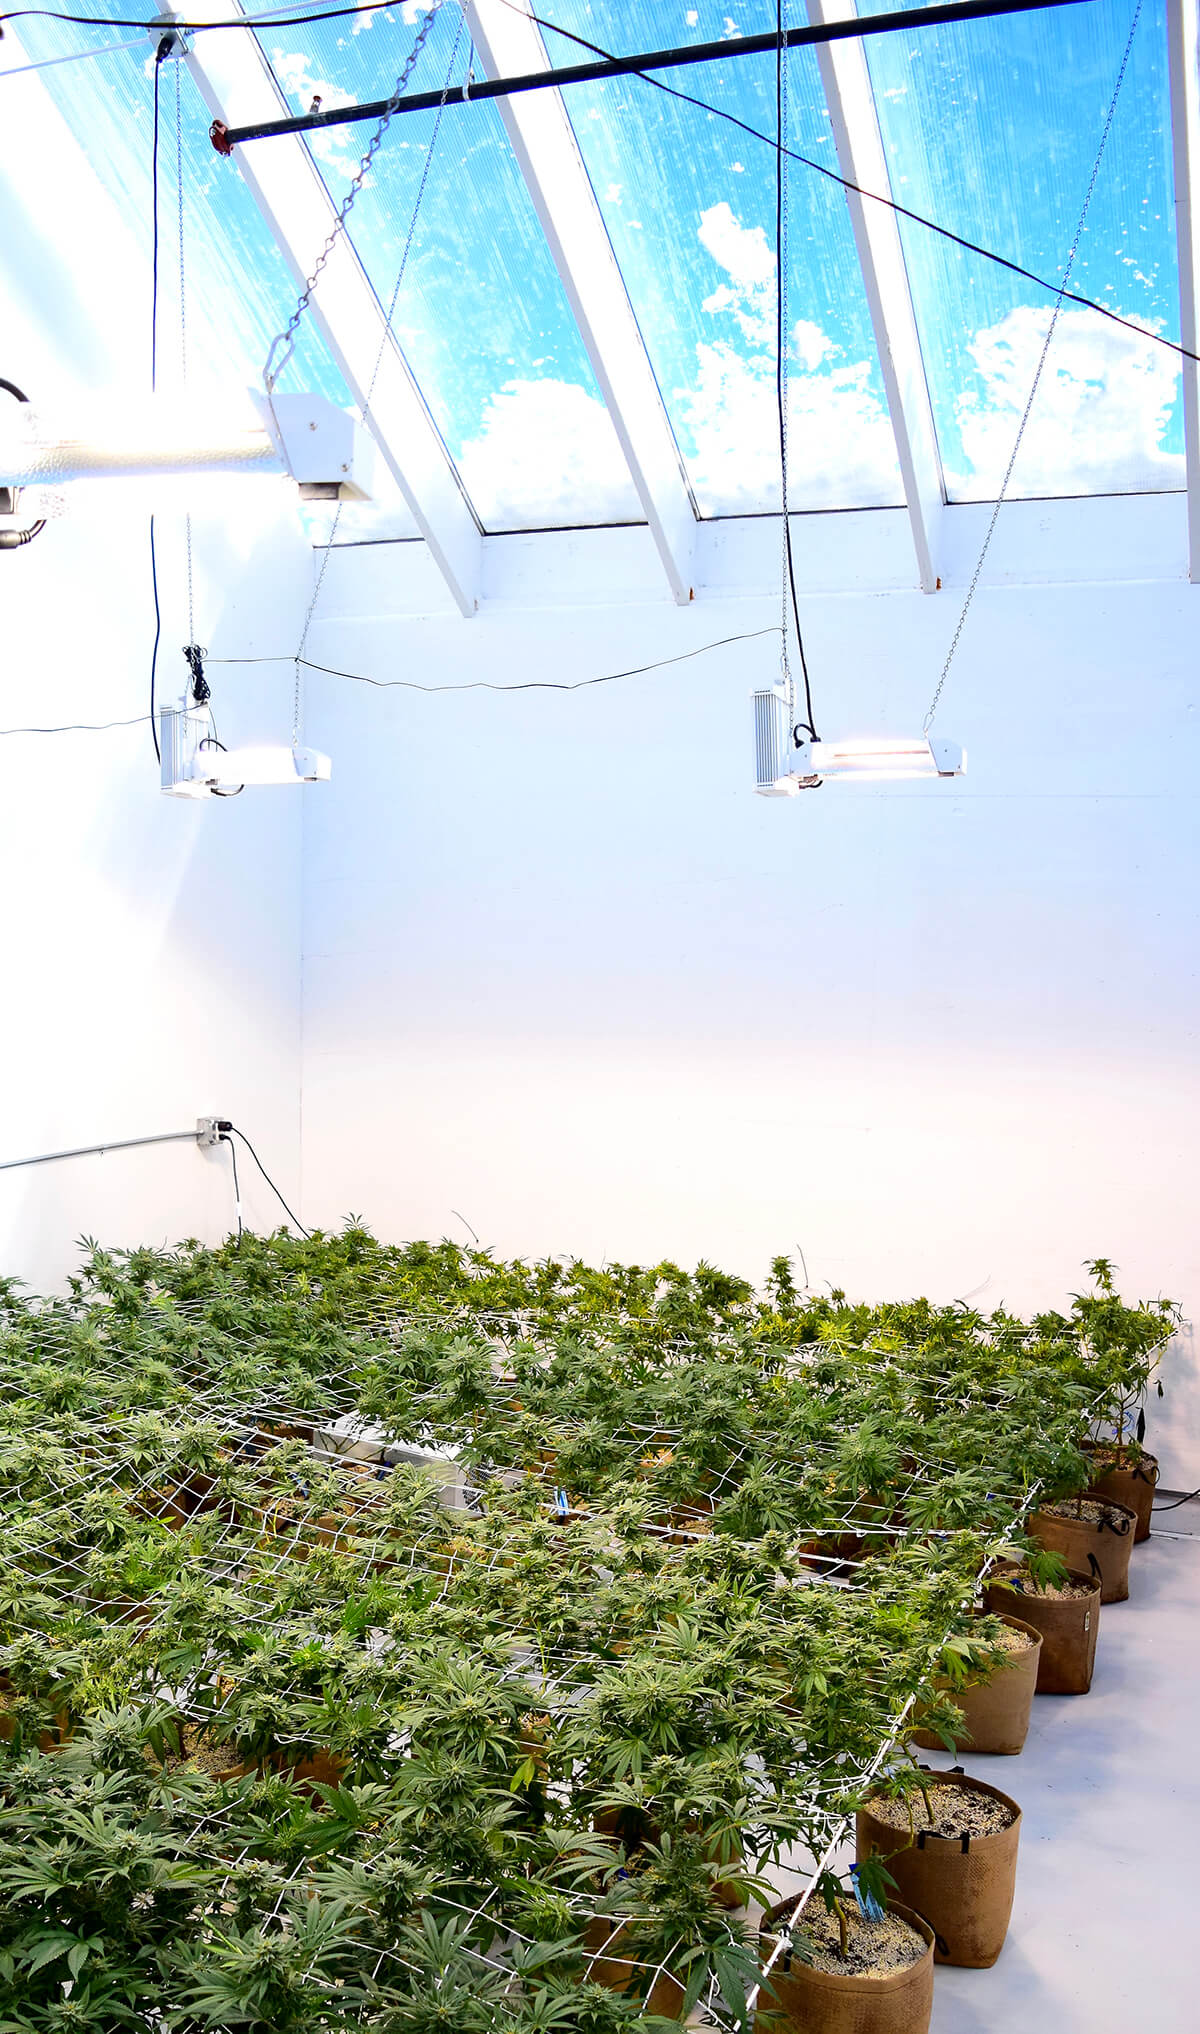 Cannabis plants at The Flower Collective